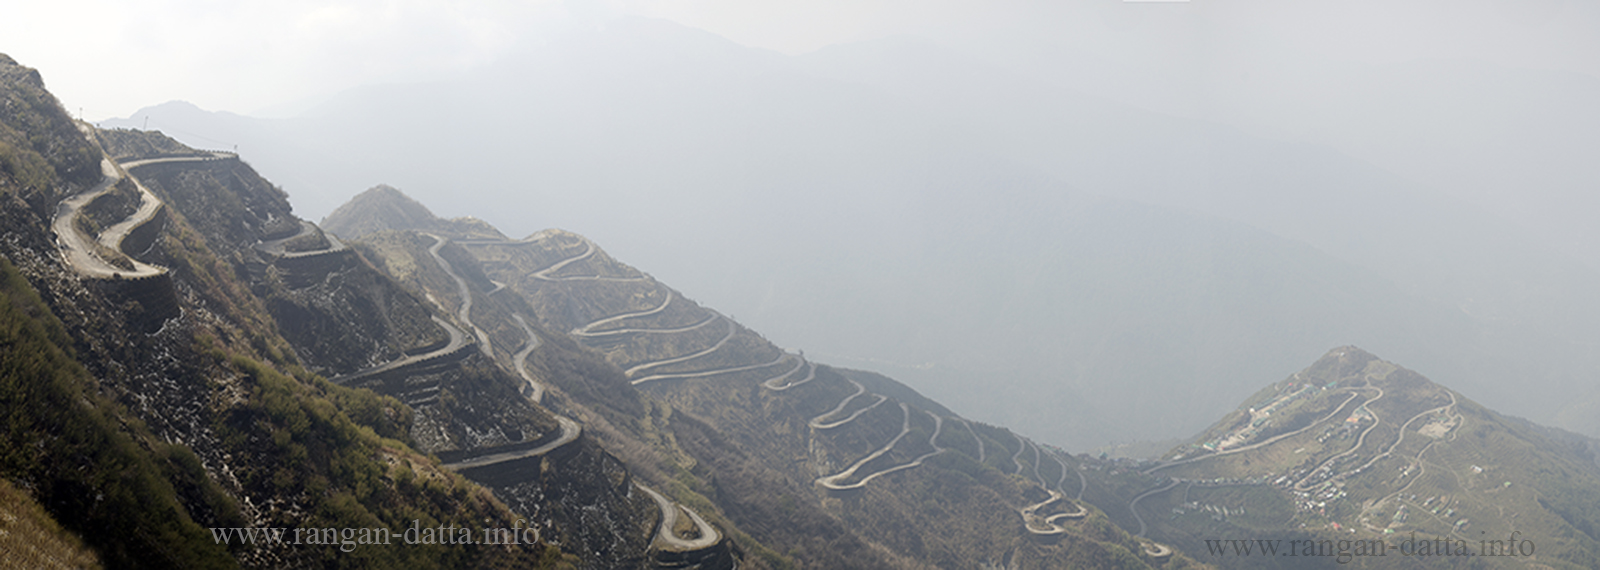 Zig Zag roads beyond Zuluk, Silk Route, East Sikkim